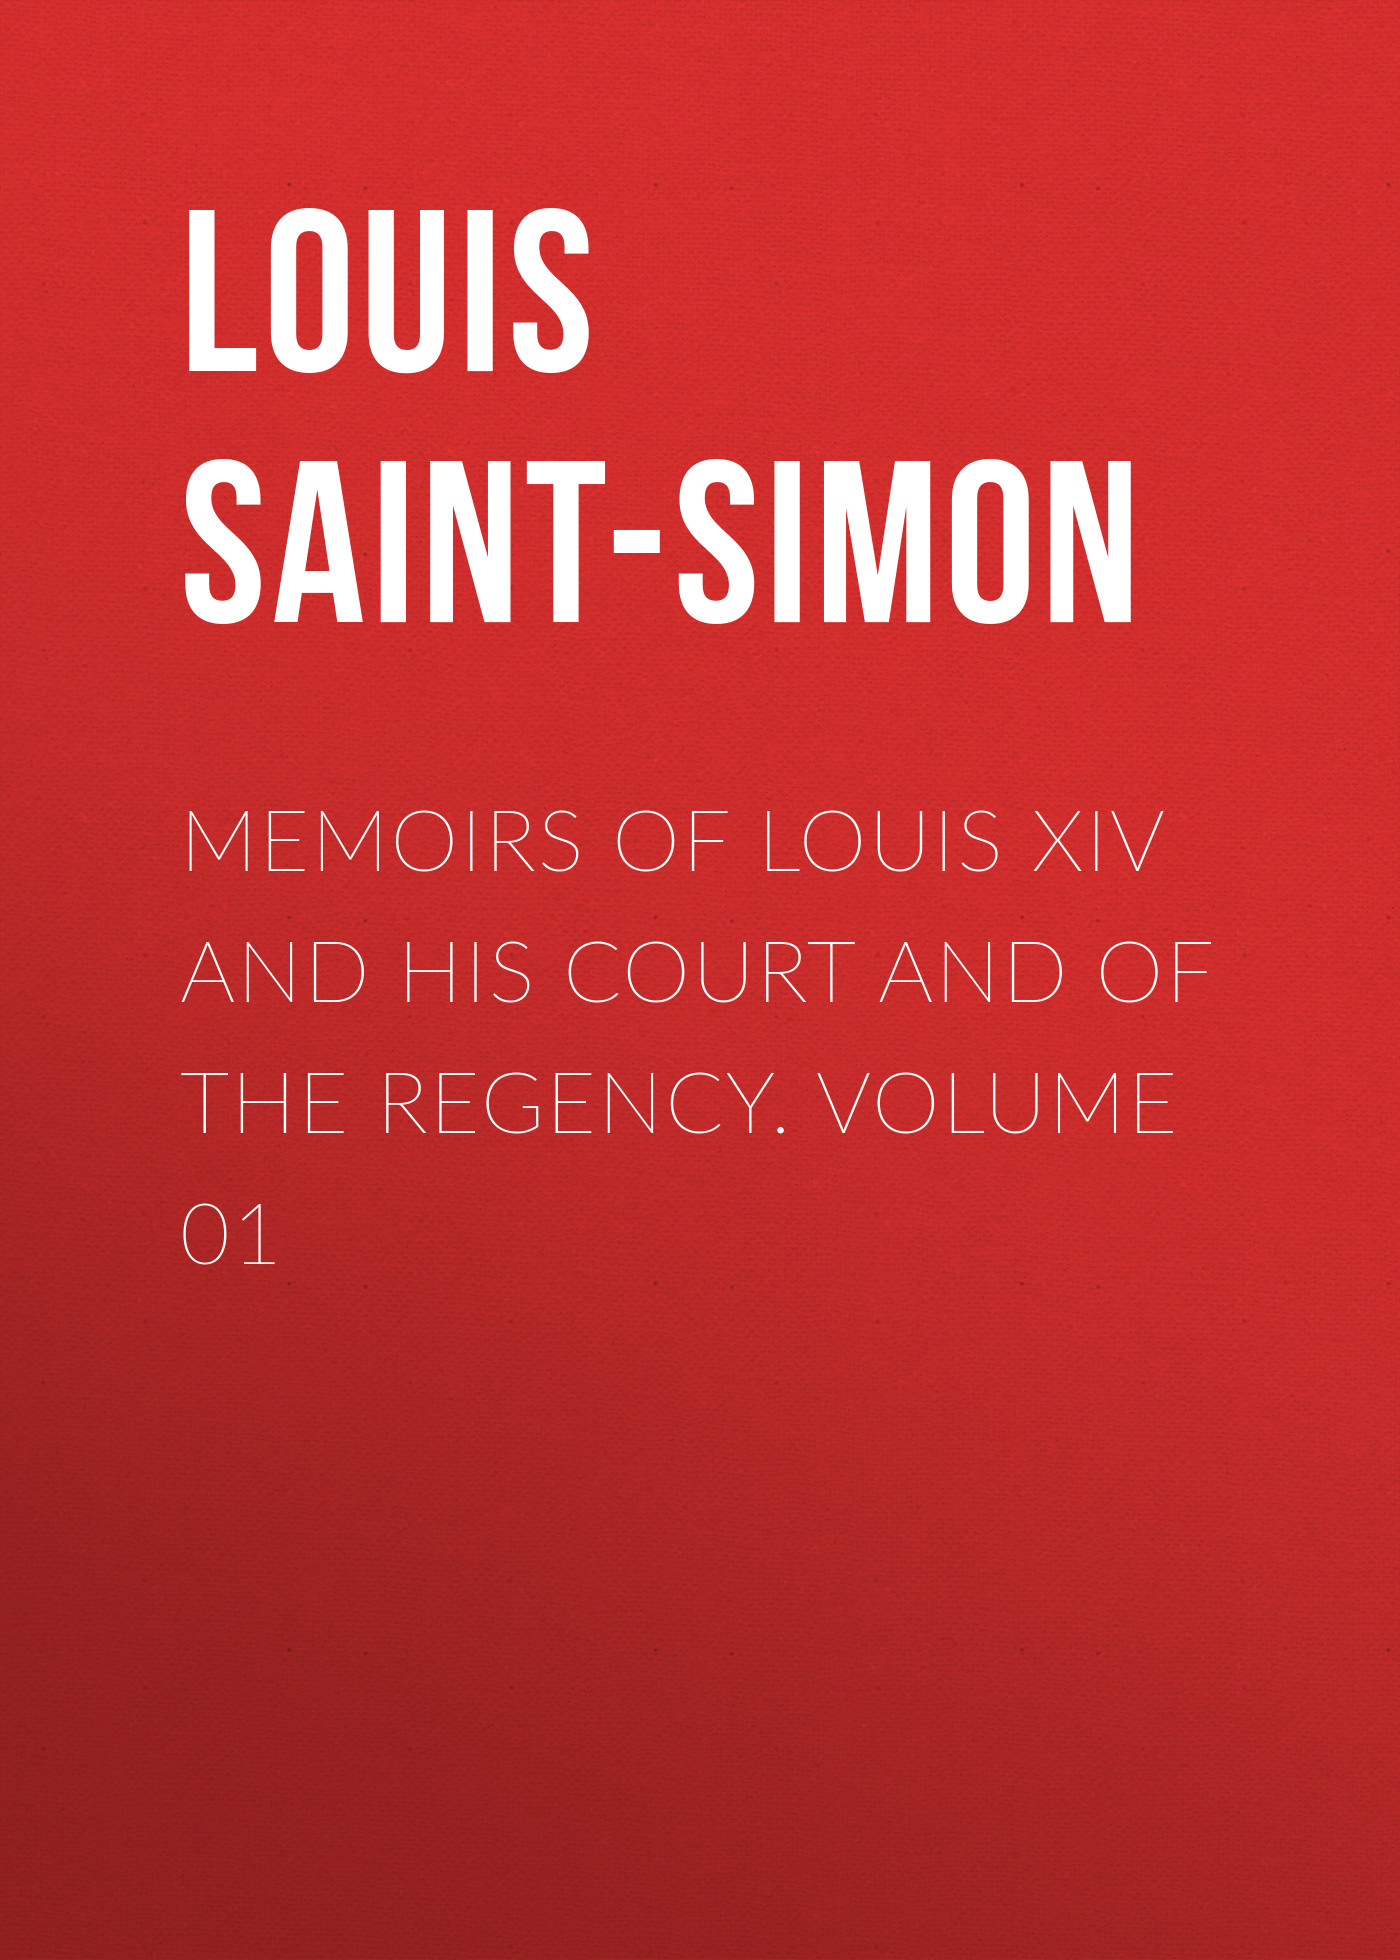 Фото - Louis Saint-Simon Memoirs of Louis XIV and His Court and of the Regency. Volume 01 jules marcou life letters and works of louis agassiz volume i